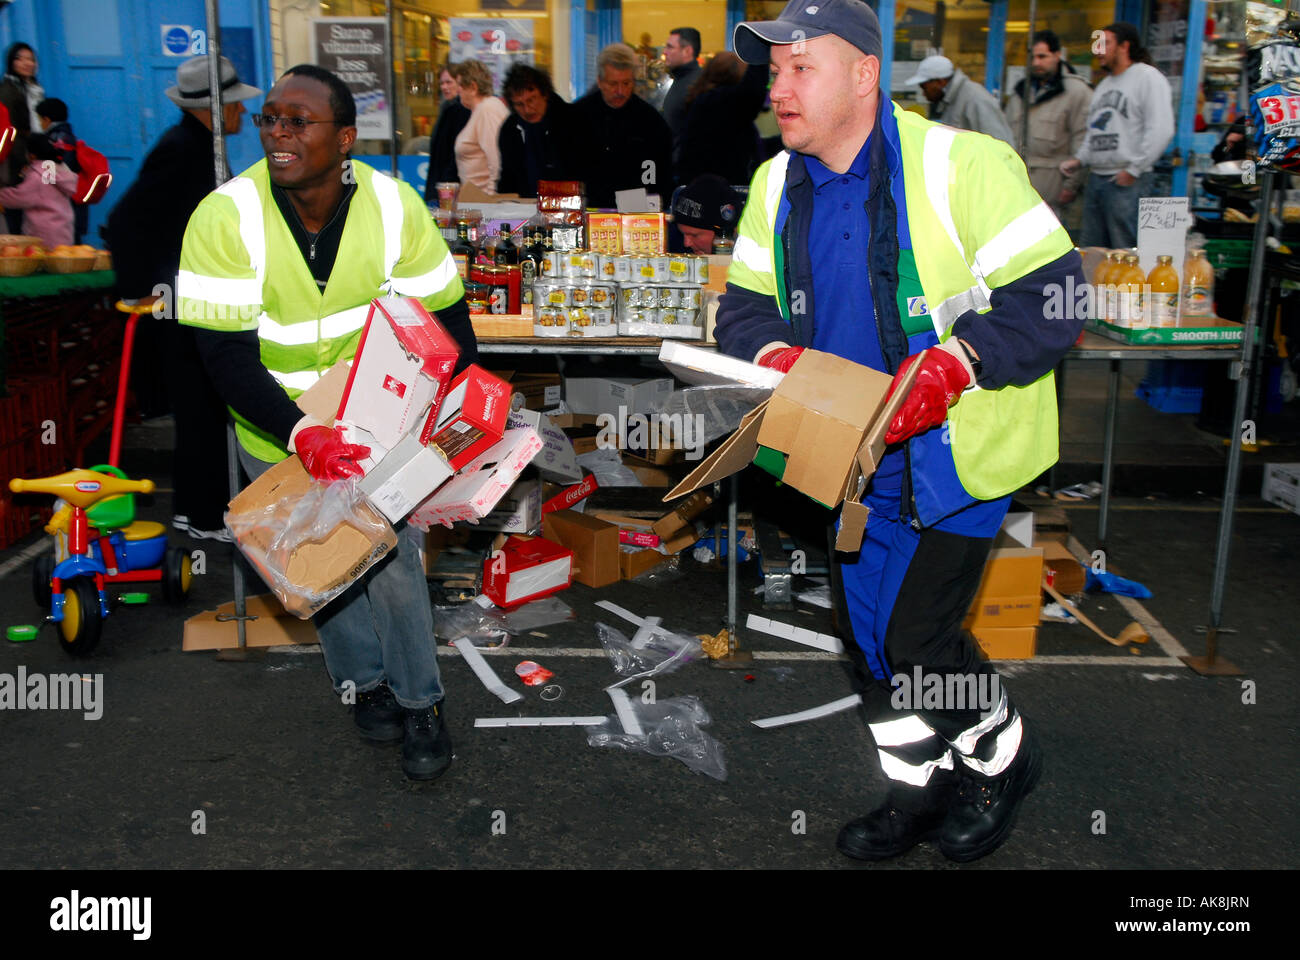 Local Authority workers collecting rubbish from Portobello Market Portobello Road Westminster London UK - Stock Image